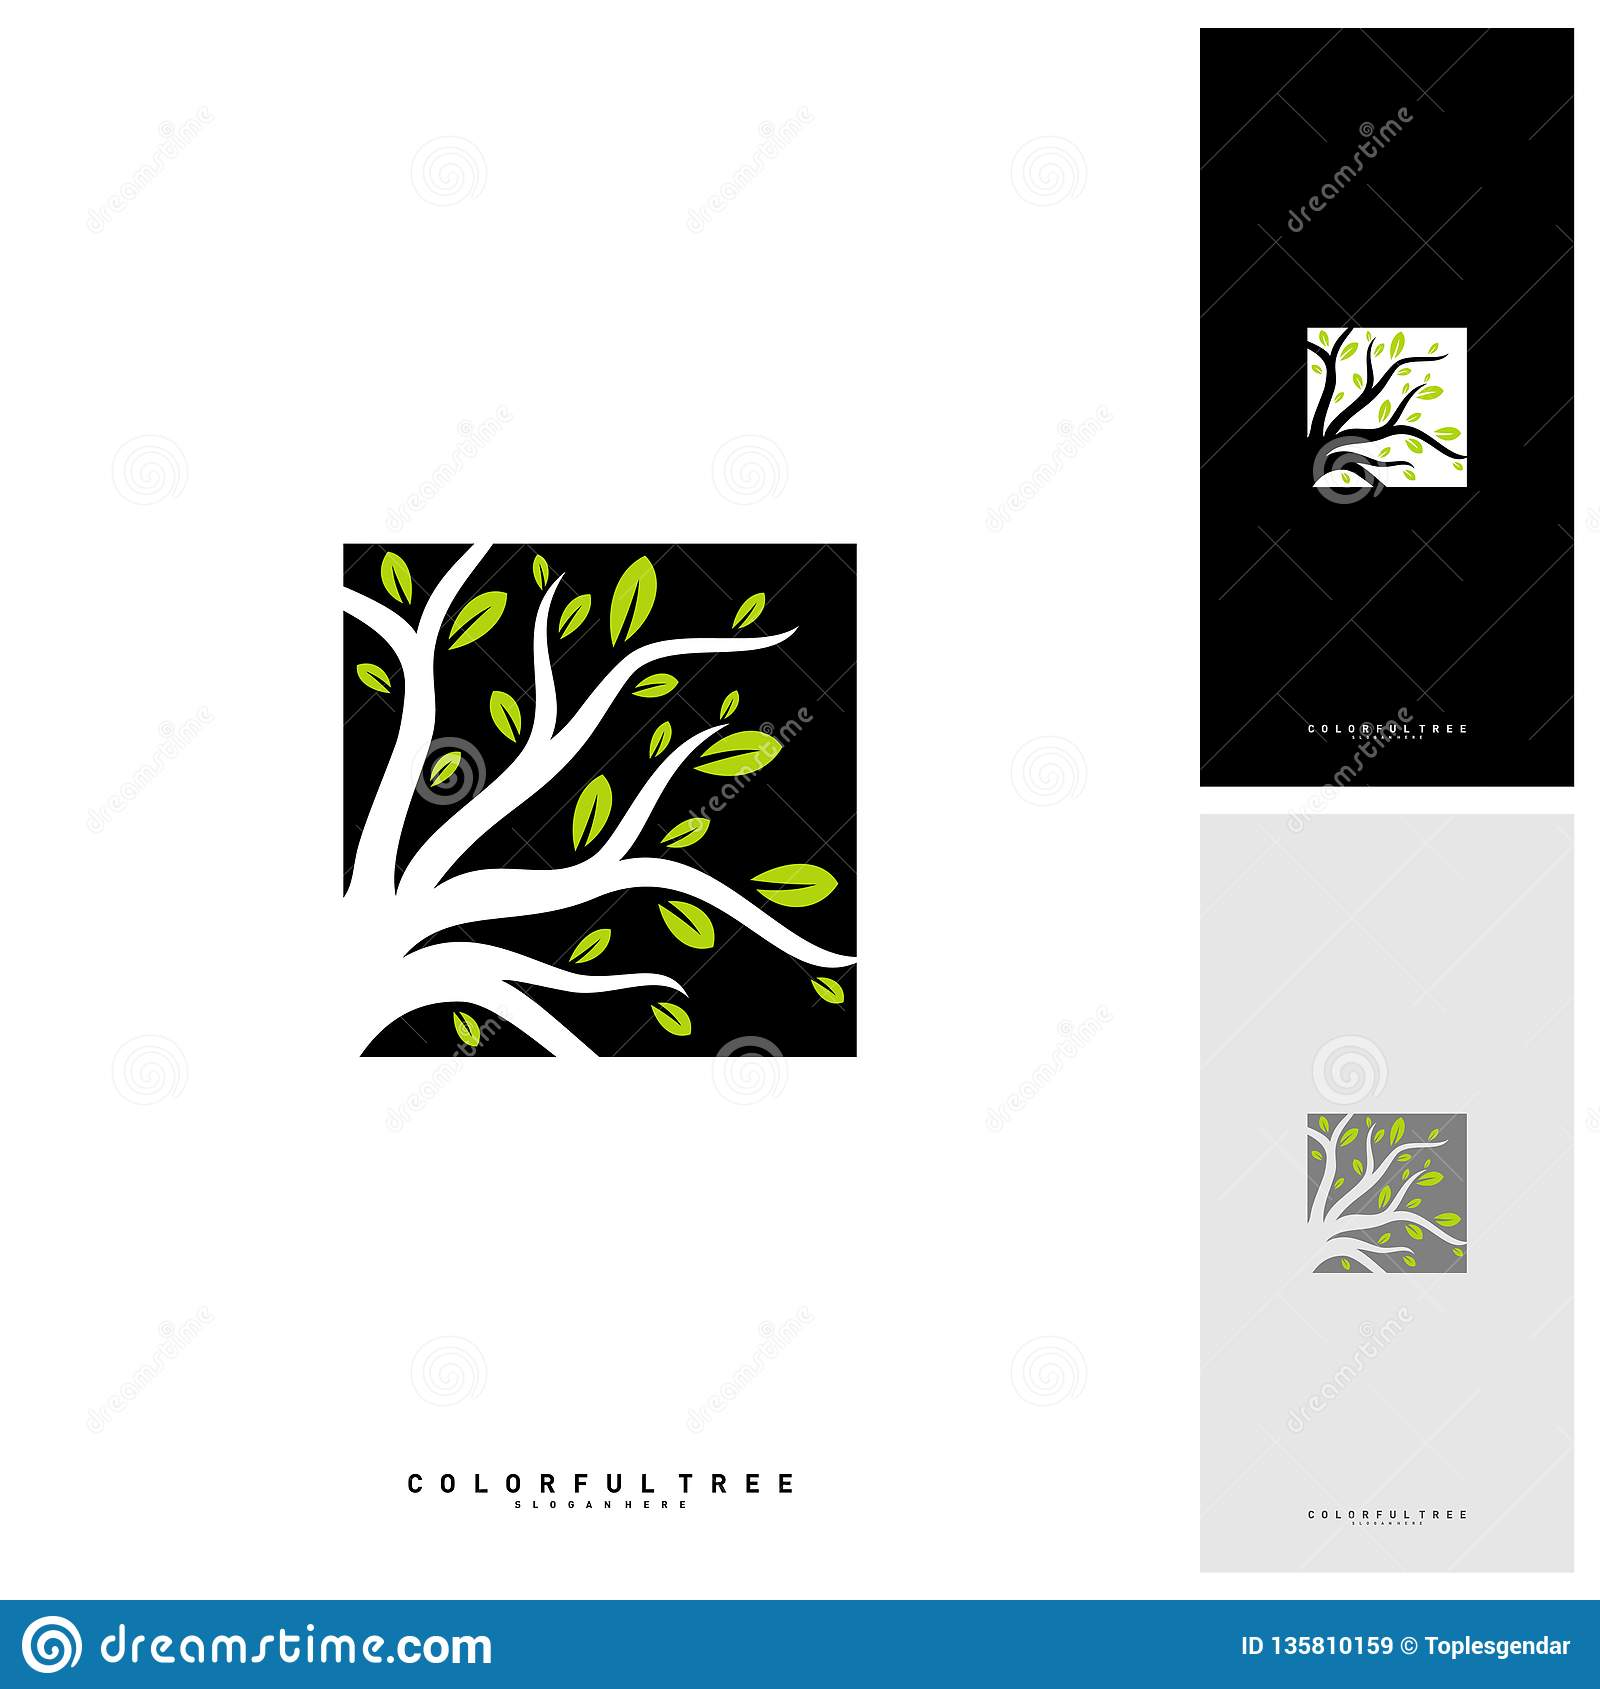 Colorful Tree Logo Design Template. Luxury Tree logo Concepts. Nature Logo Concepts Vector